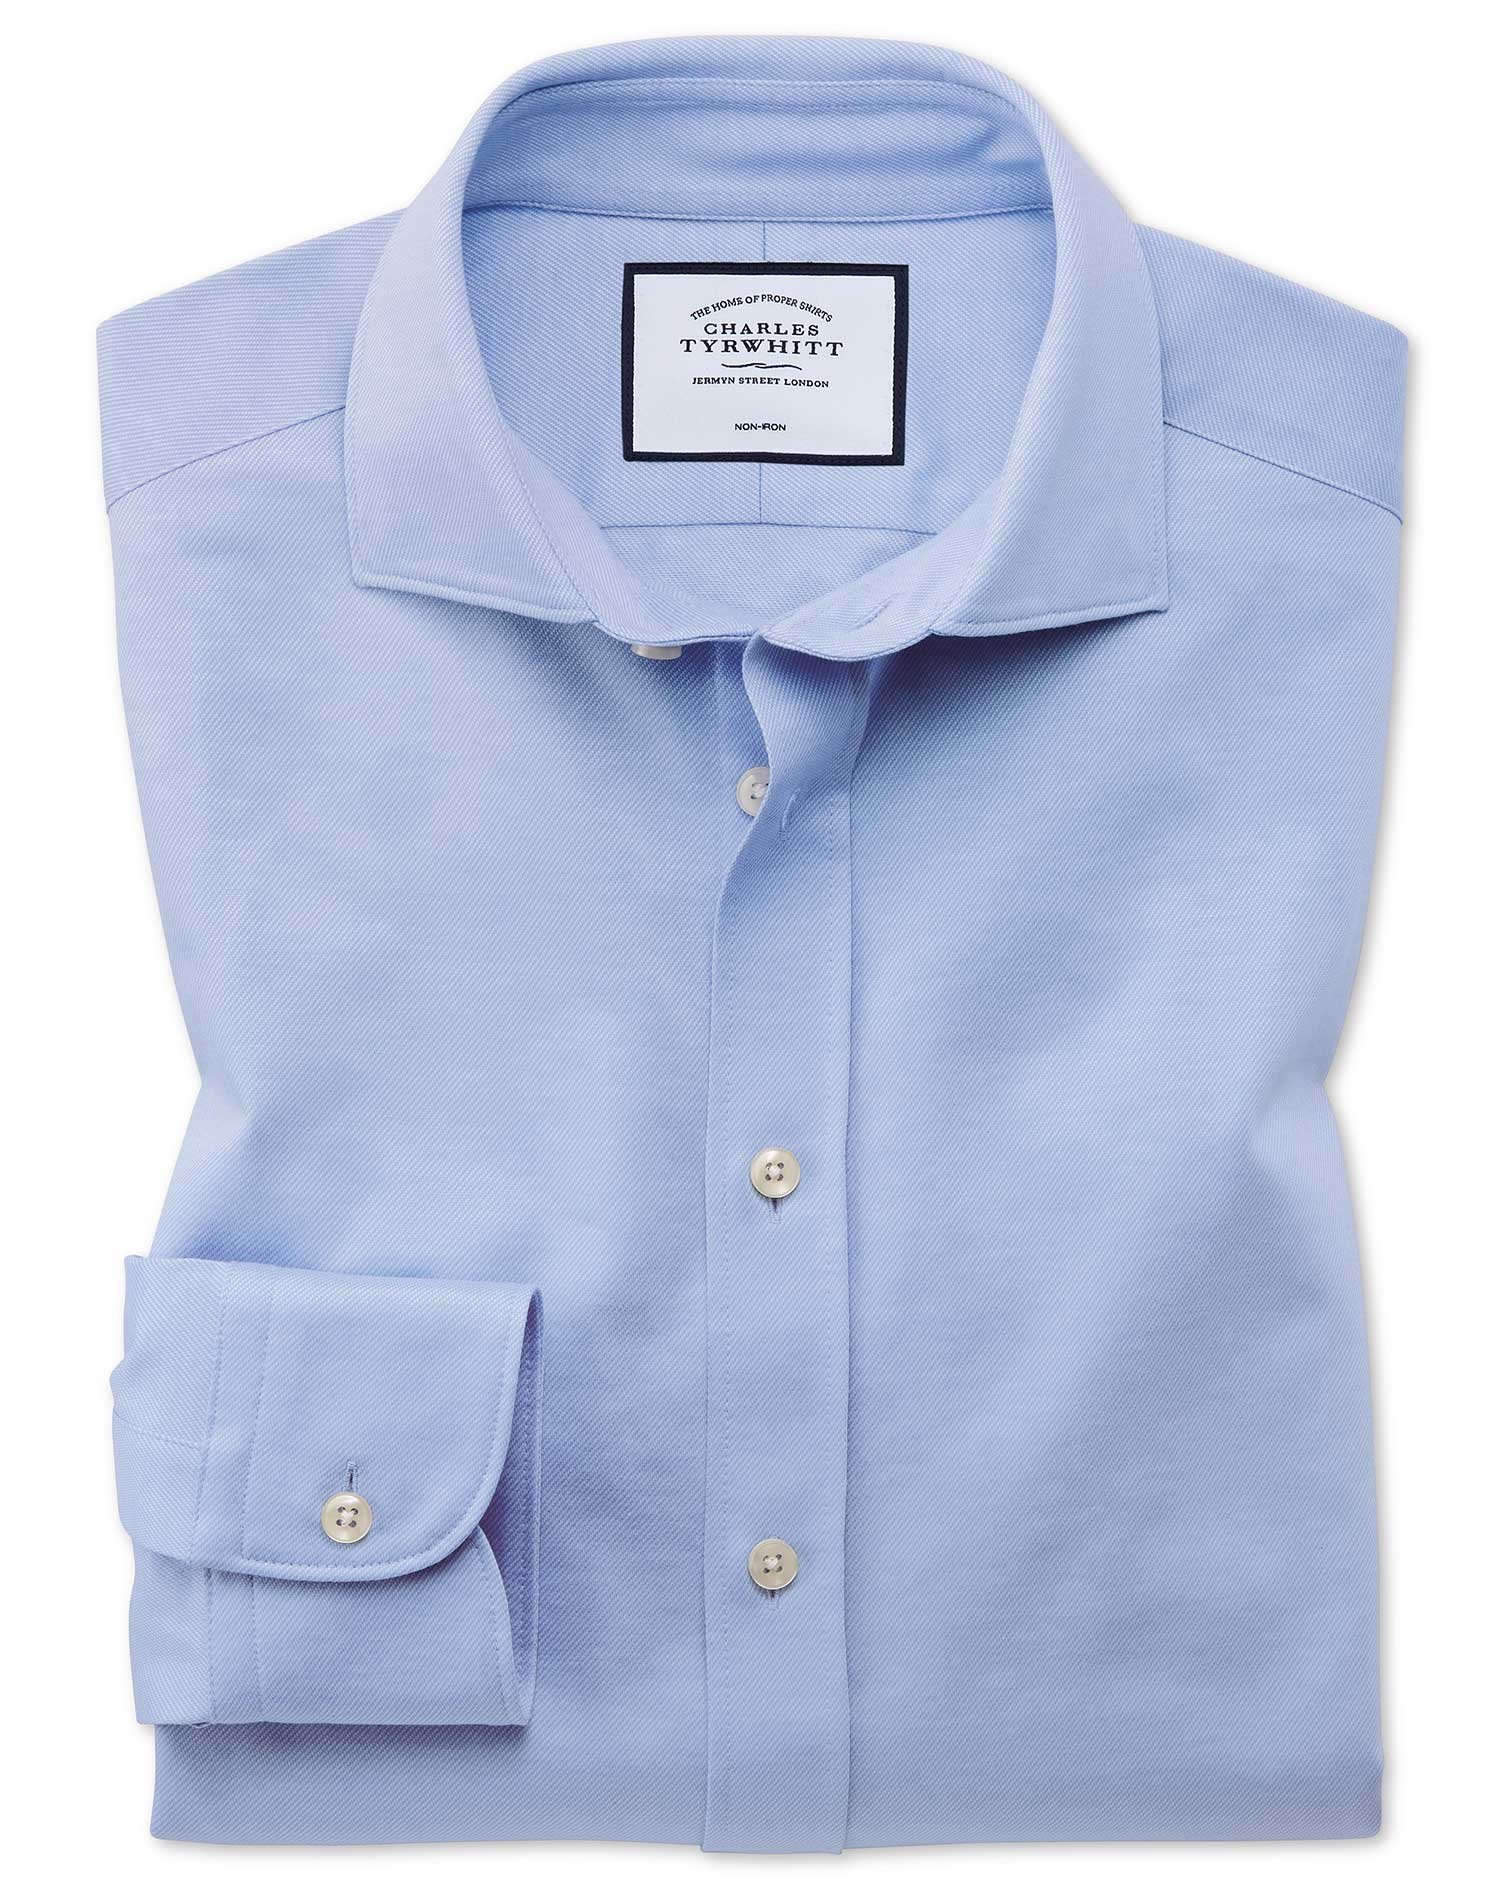 Slim Fit Business Casual Travel Blue Cotton Formal Shirt Single Cuff Size 15.5/35 by Charles Tyrwhit